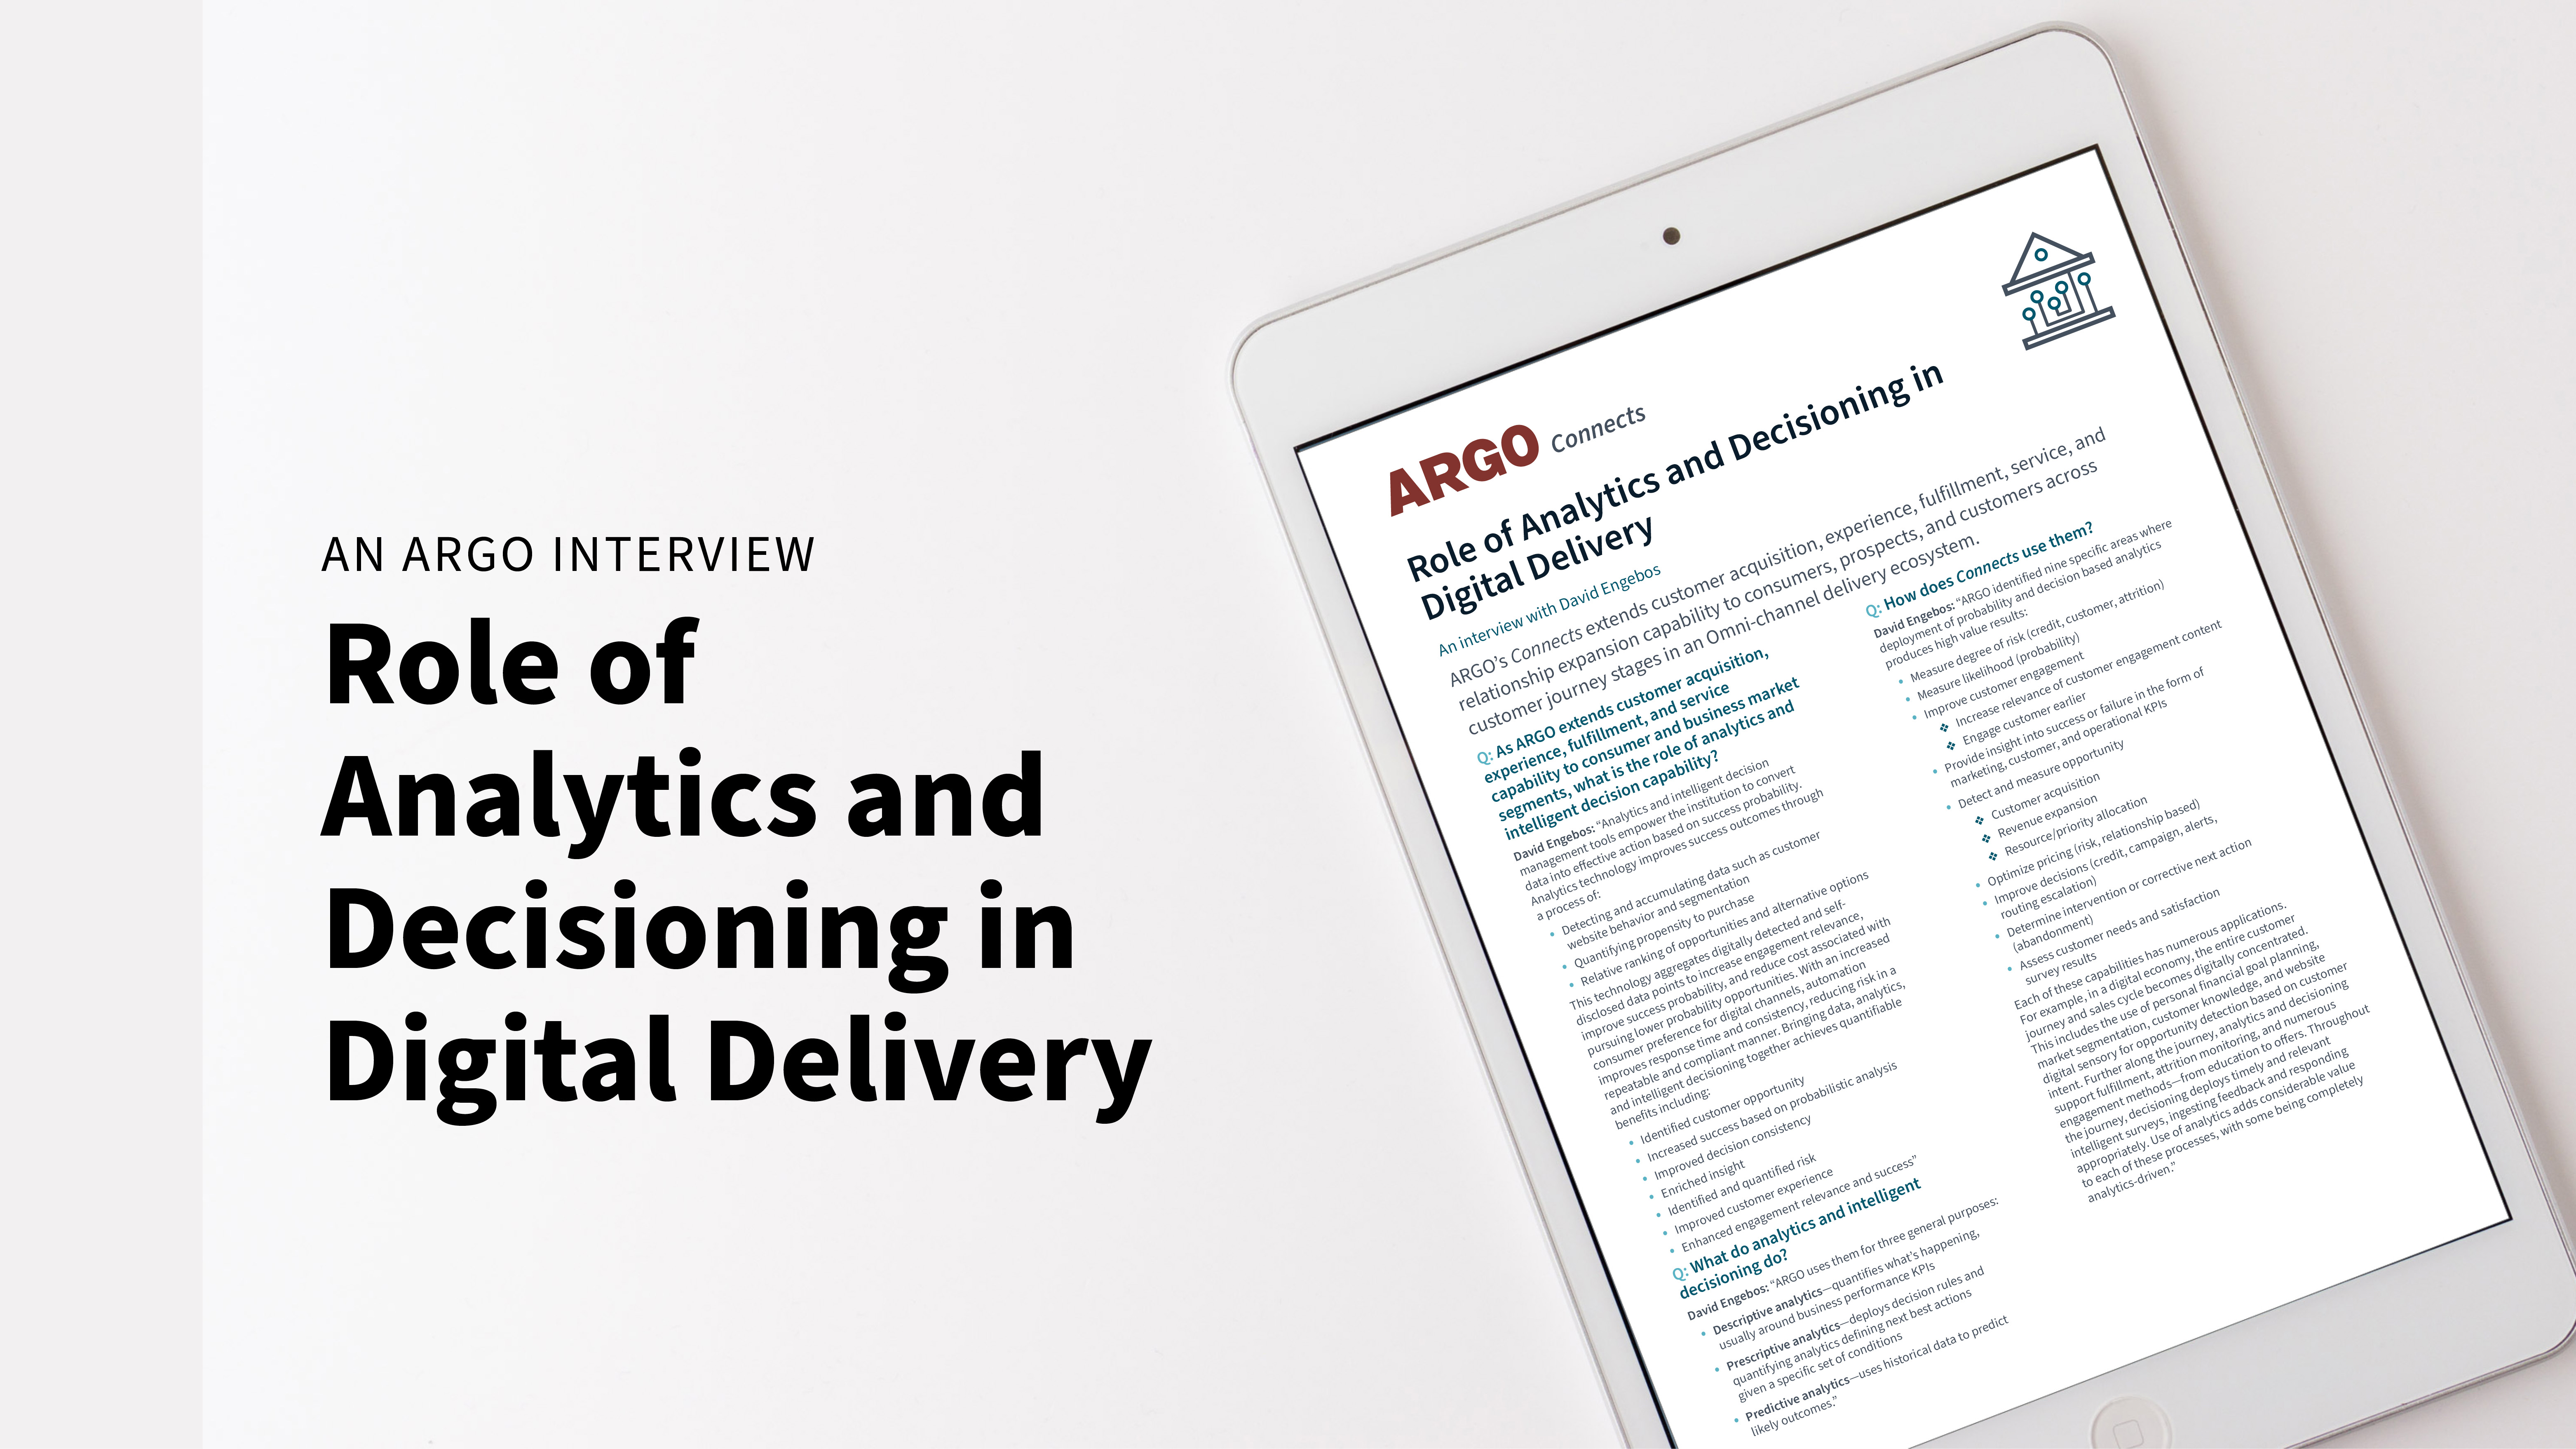 Role of Analytics and Decisioning in Digital Delivery[51]